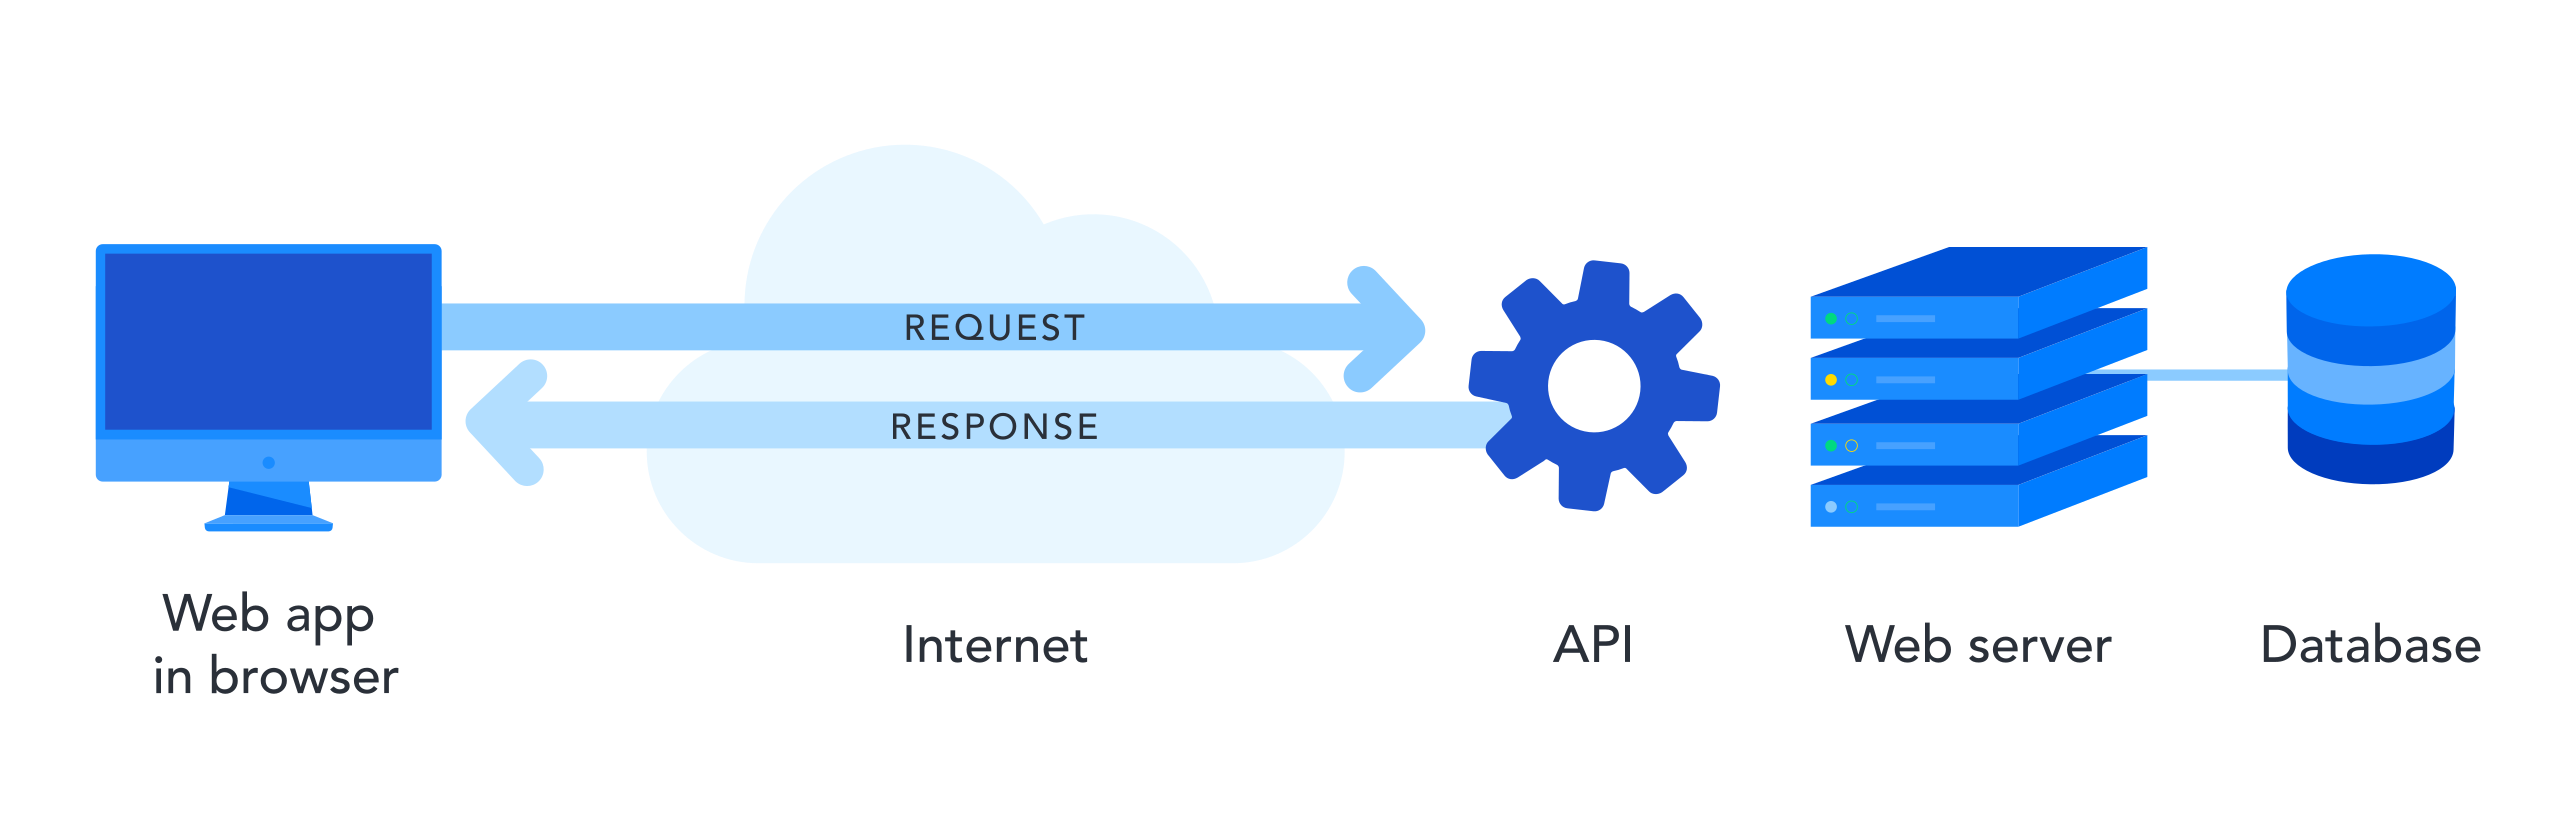 """An illustration showing how an API works. On the left is an illustration of a computer, with the text """"web app in browser"""" underneath. An arrow is drawn to the right representing the request to a wheel cog, with the word """"API"""" underneath. Further to the right is an illustration of a web server, which has a line drawn connecting it to an illustration of a database. Under the arrow representing the request is an arrow moving in the opposite direction representing the response from the API sent back to the web browser."""